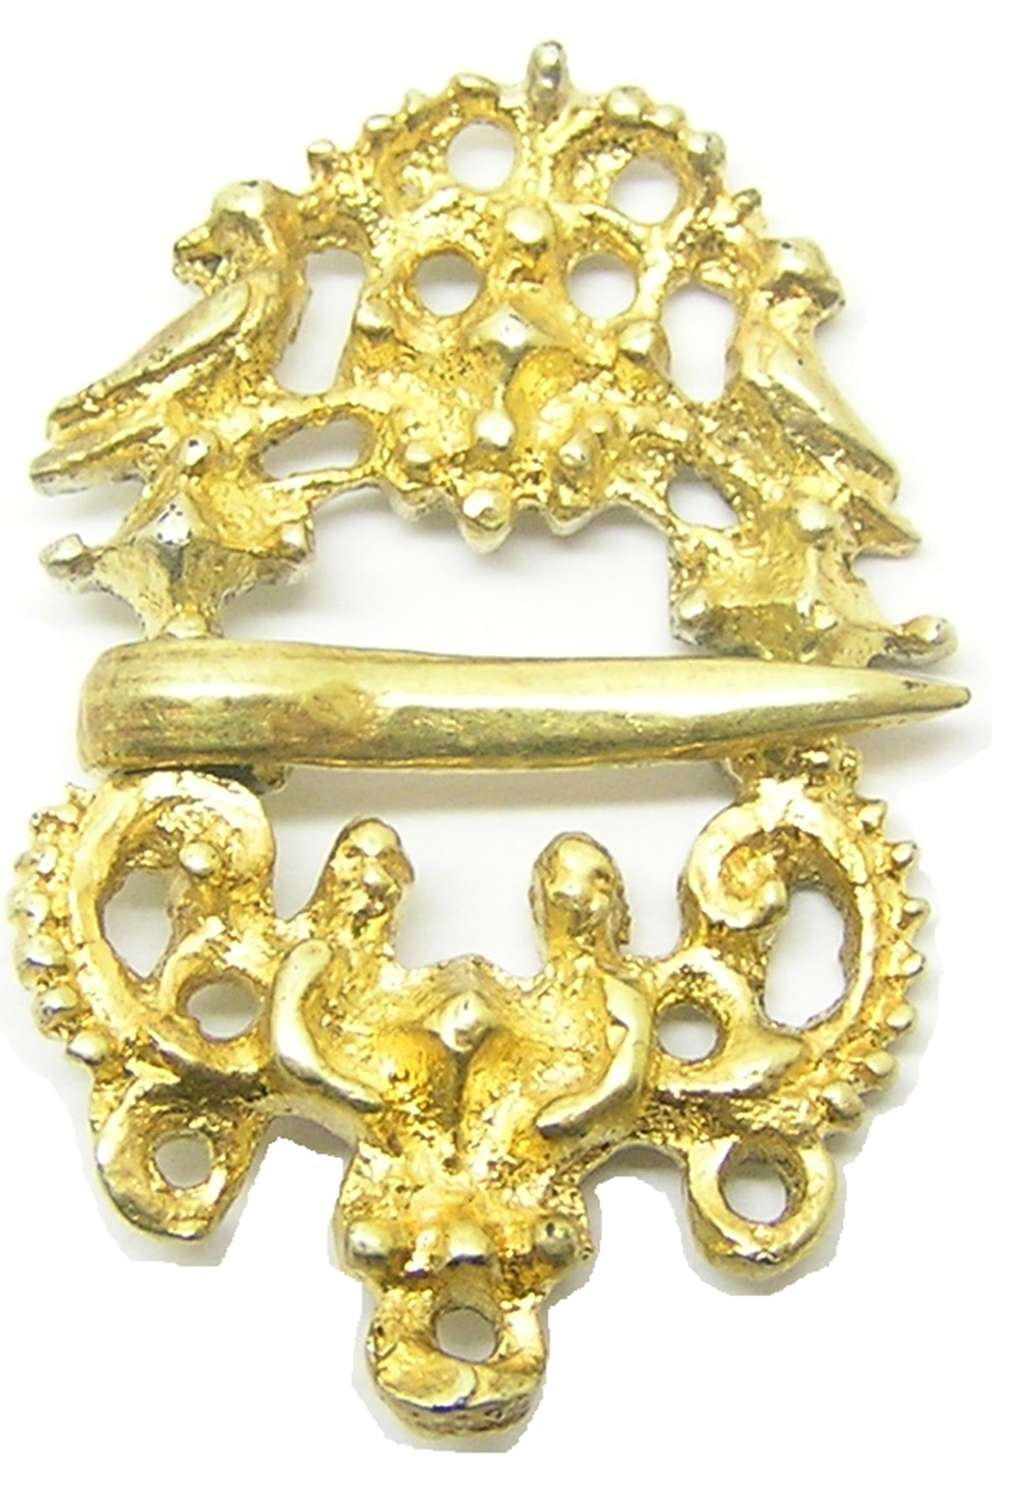 Renaissance silver-gilt brooch with 'love birds'